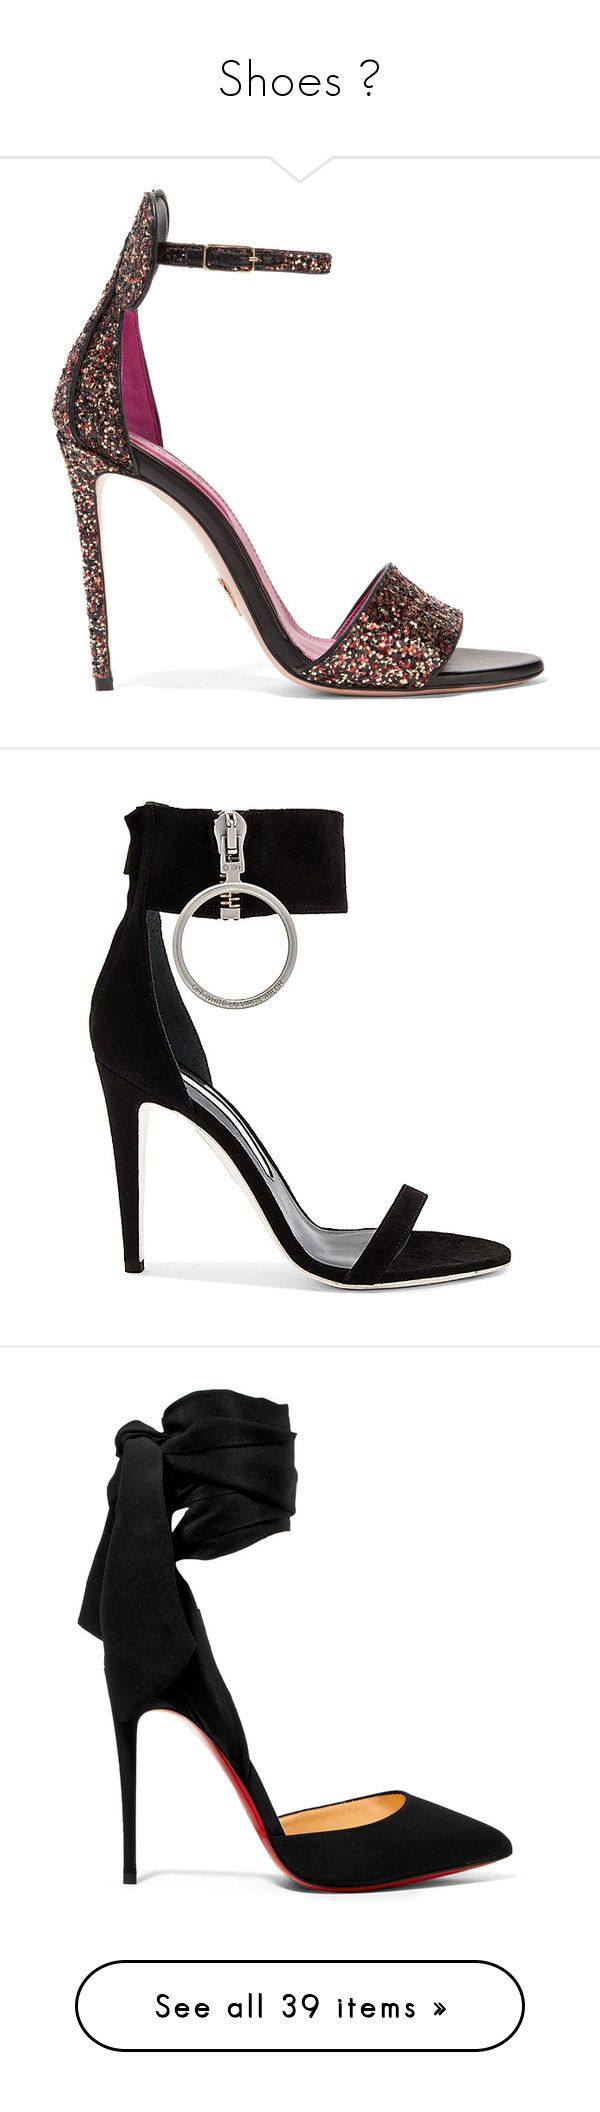 """Shoes 👠"" by gltnmert ❤ liked on Polyvore featuring shoes, sandals, heels, sapato, footwear, black, black strappy sandals, strap heel sandals, heeled sandals and black sandals"